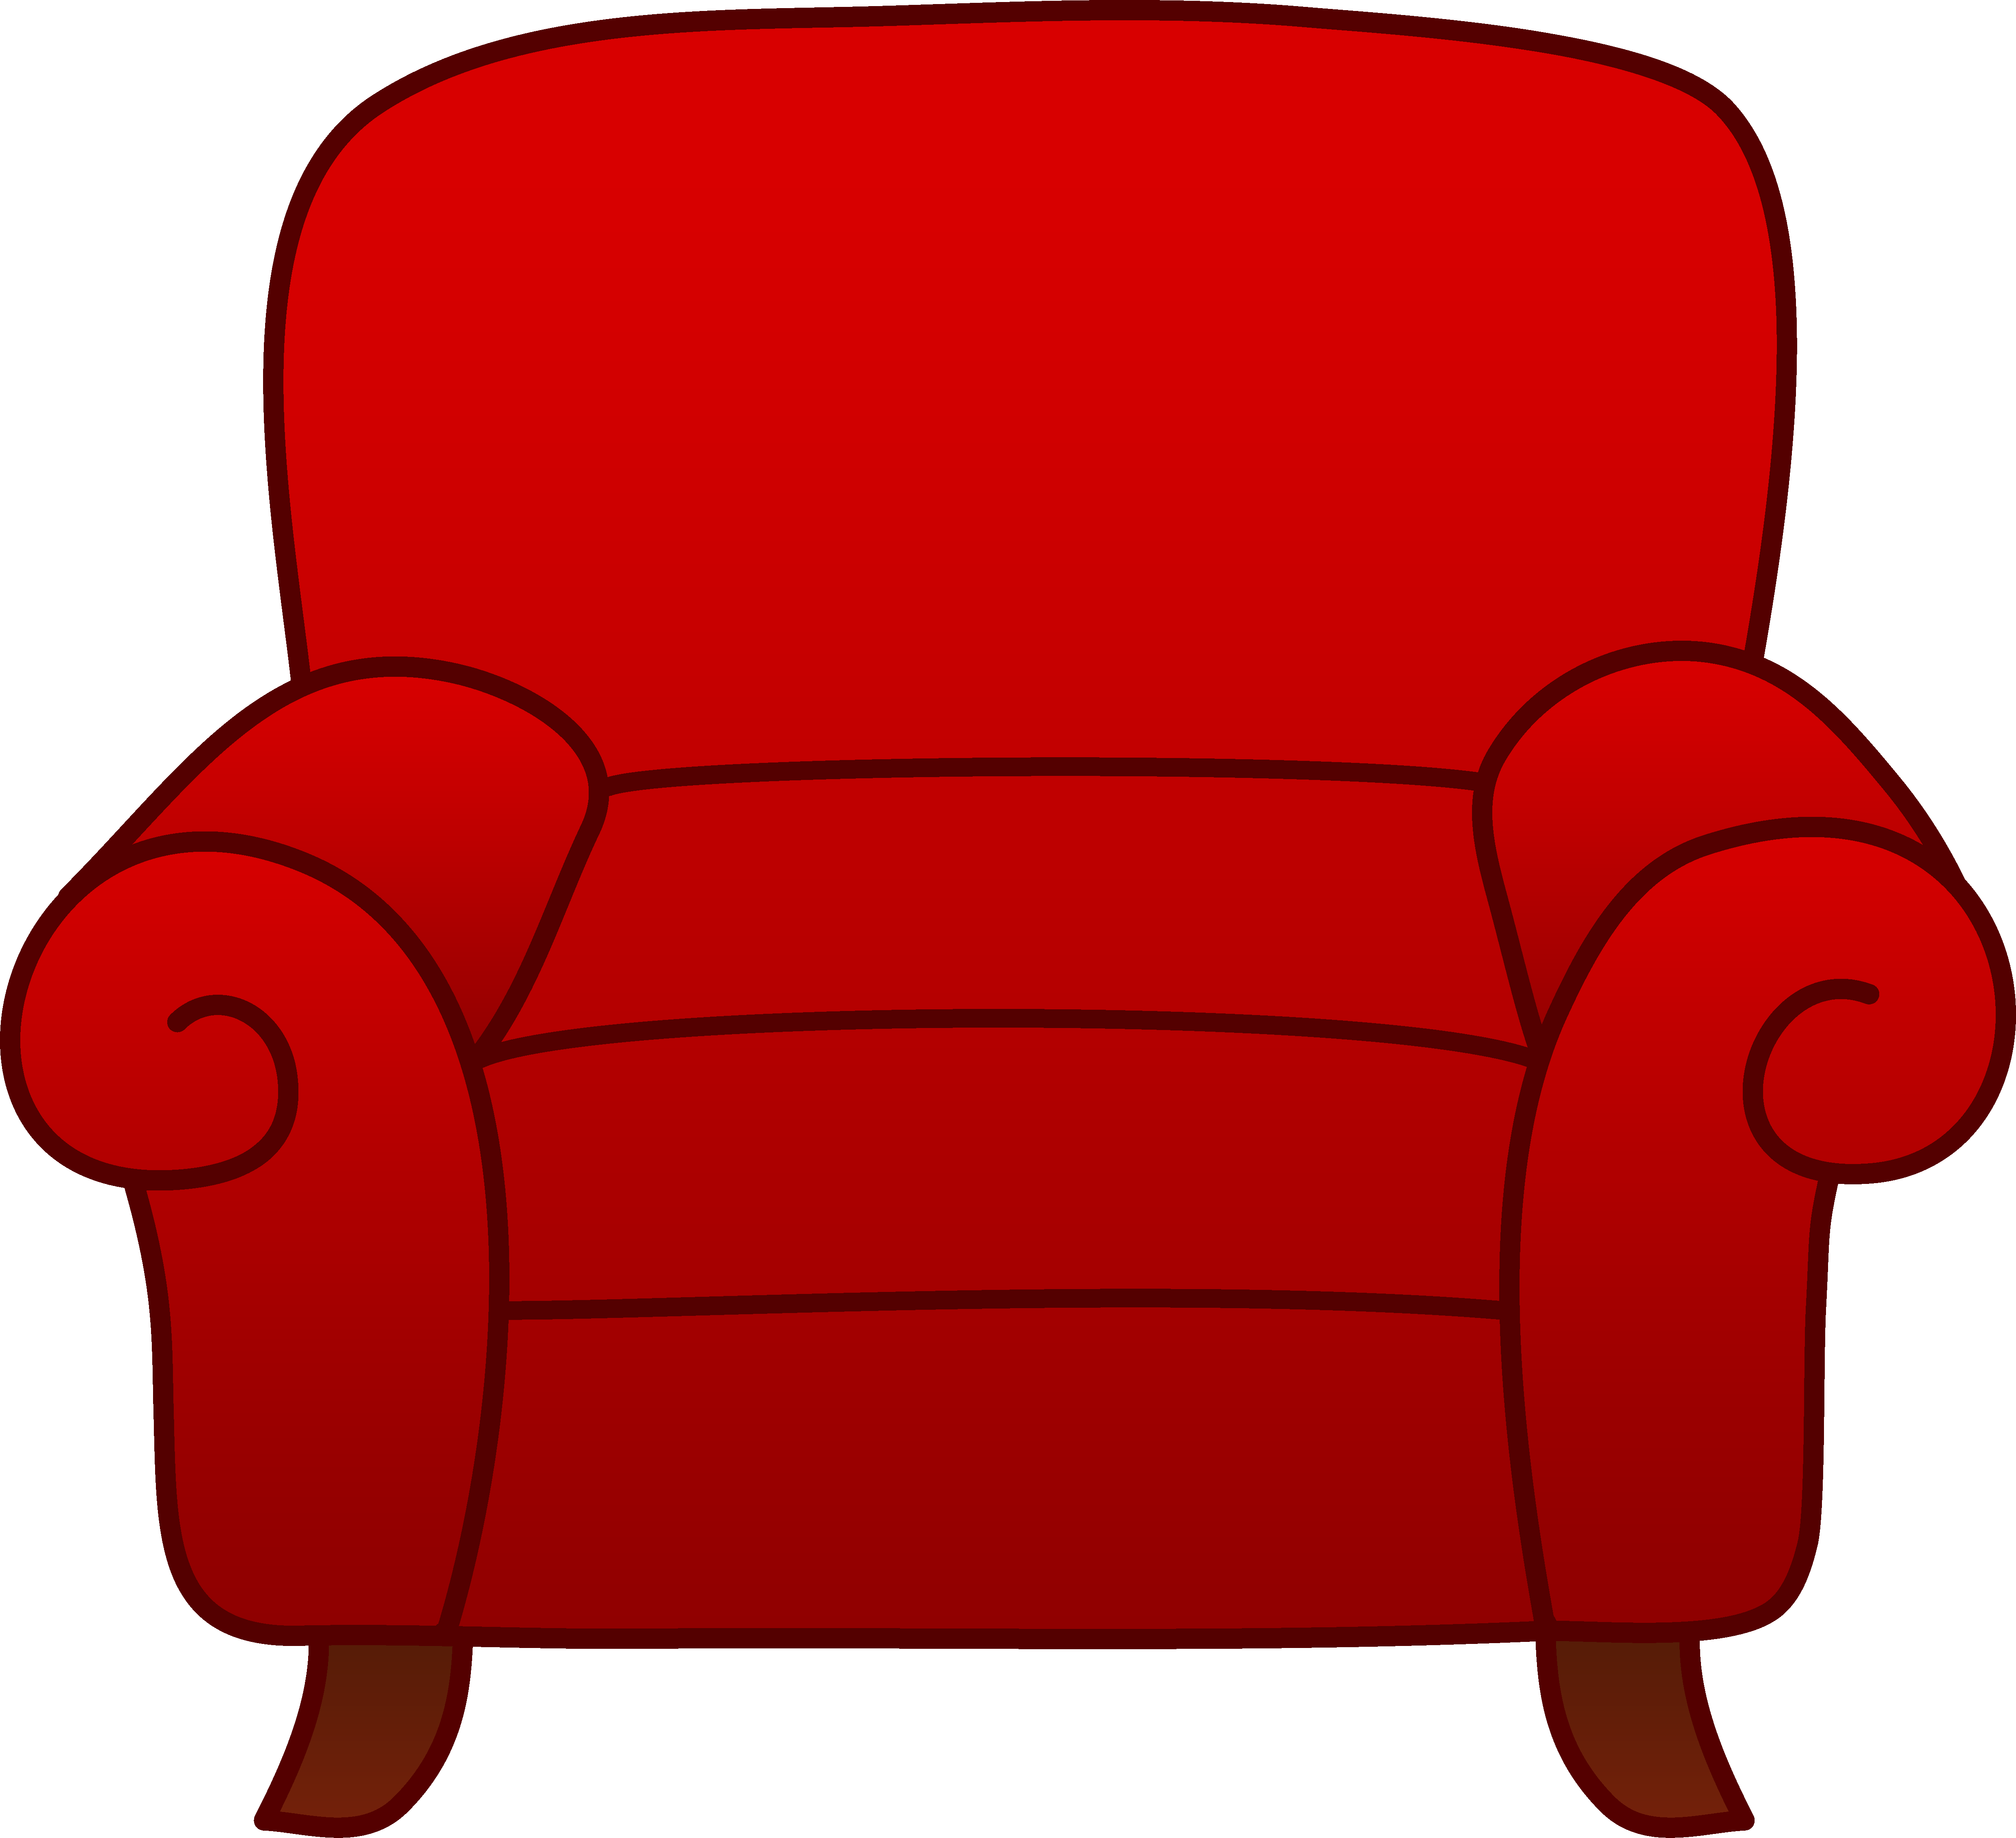 Peachy Cartoon Couch Drawing Free Download Best Cartoon Couch Bralicious Painted Fabric Chair Ideas Braliciousco